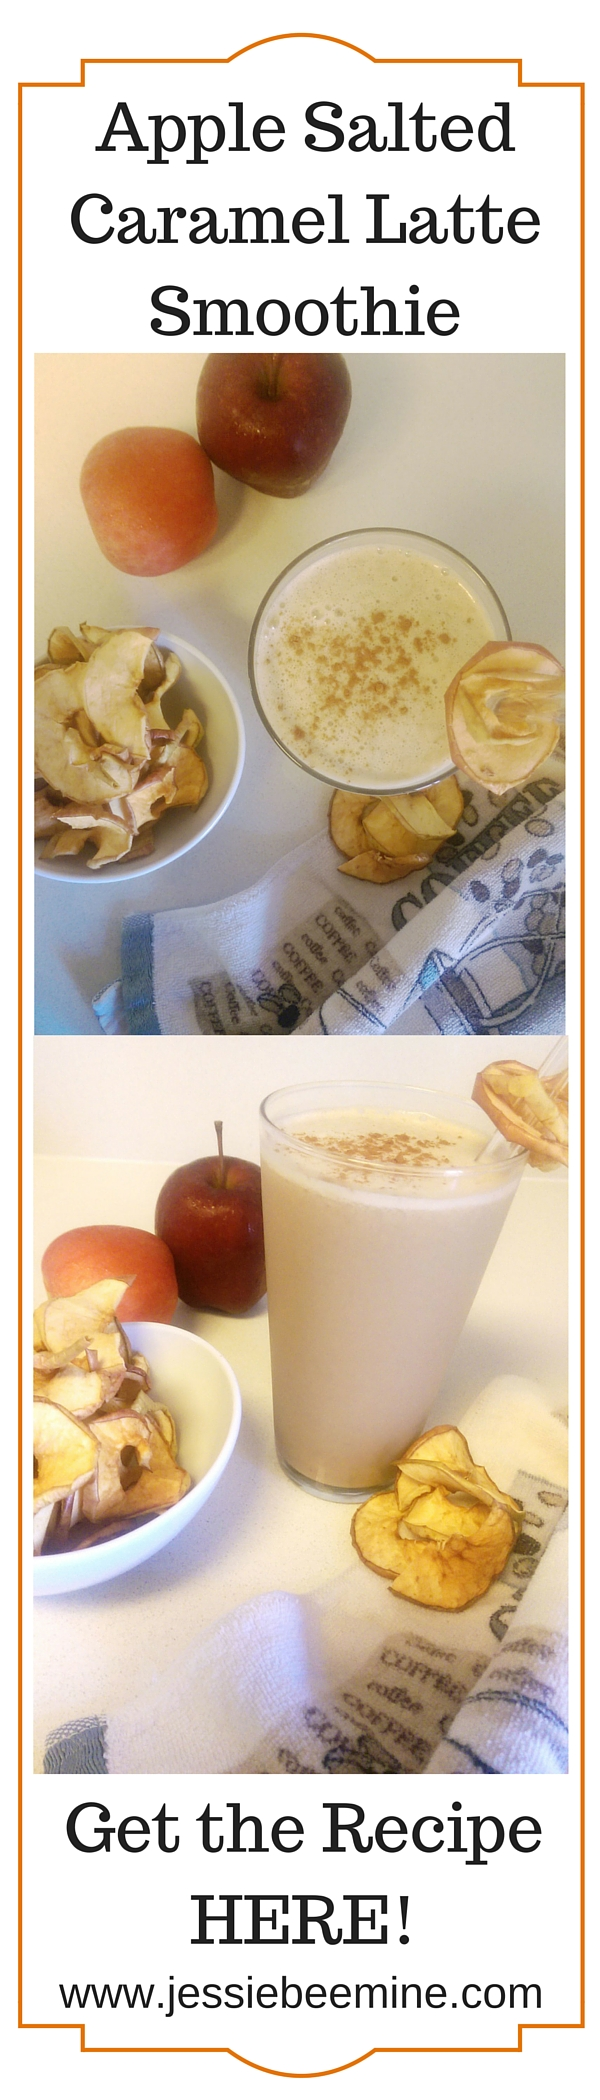 Apple Salted Caramel Latte Smoothie has fall written all over it and it's so good. www.jessiebeemine.com